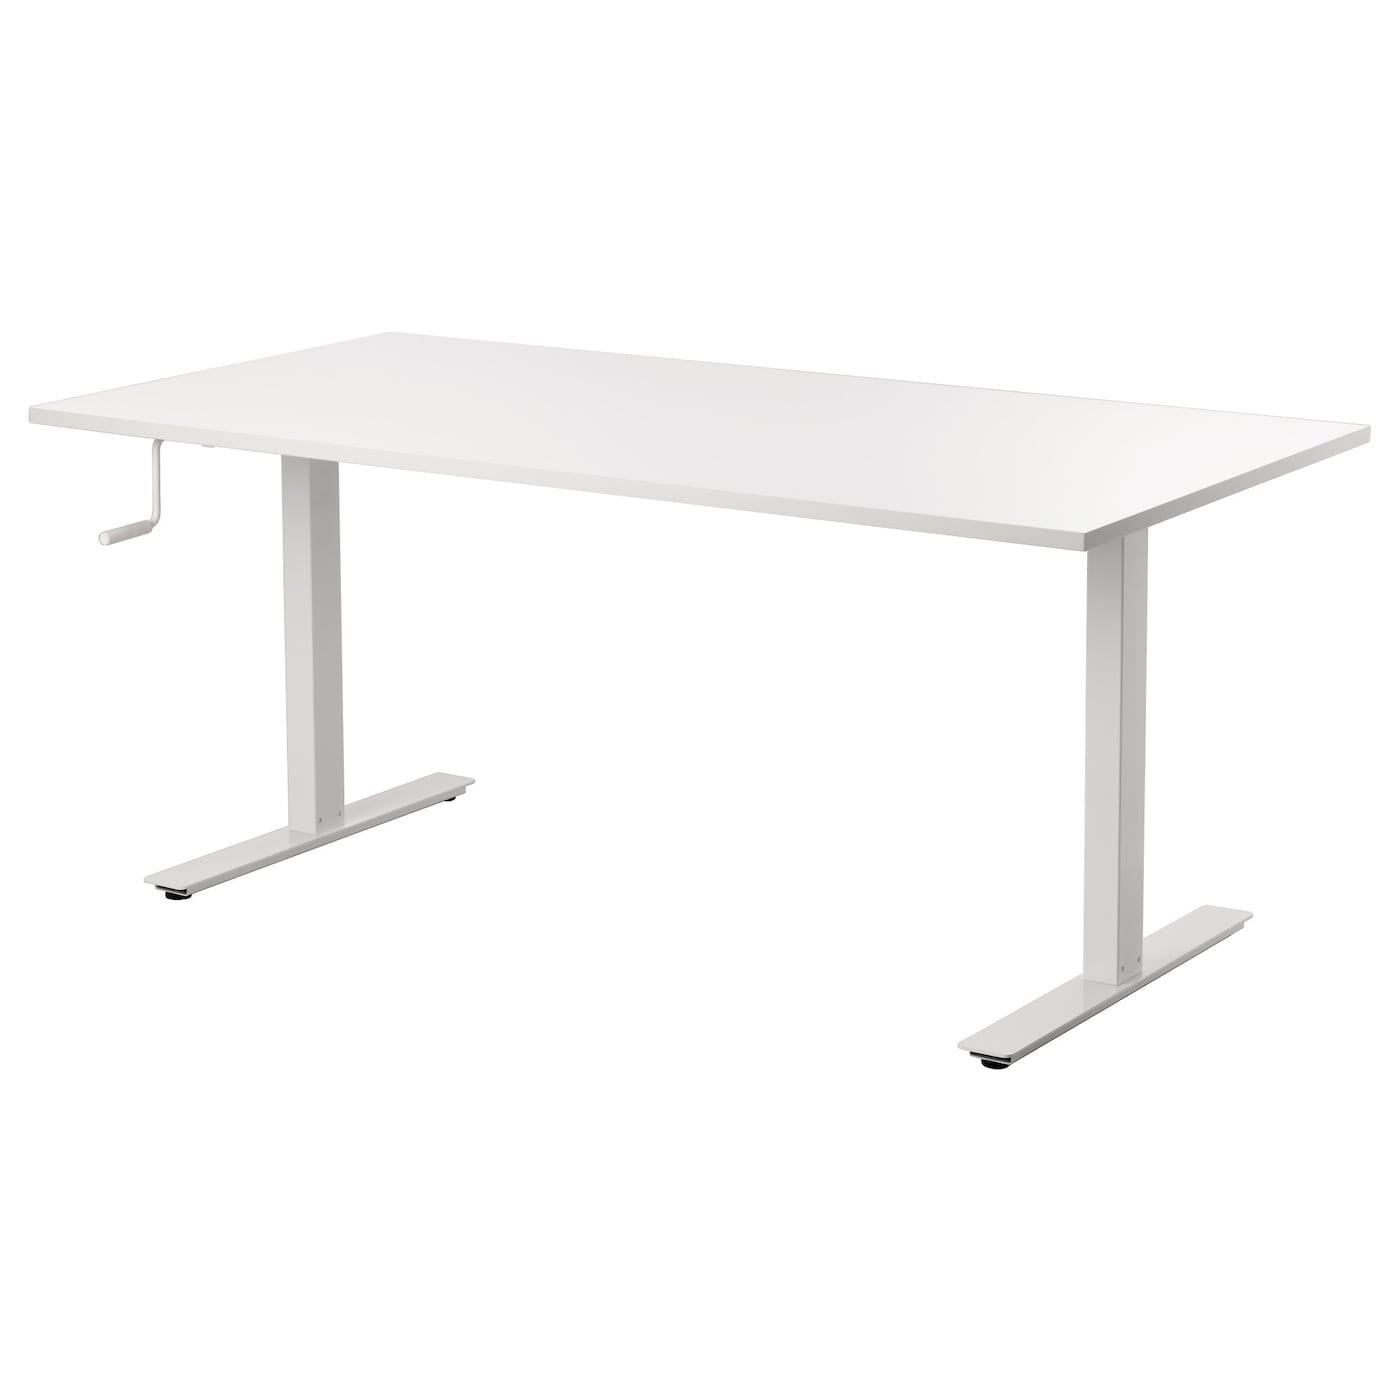 skarsta bureau assis debout blanc 160x80 cm ikea. Black Bedroom Furniture Sets. Home Design Ideas